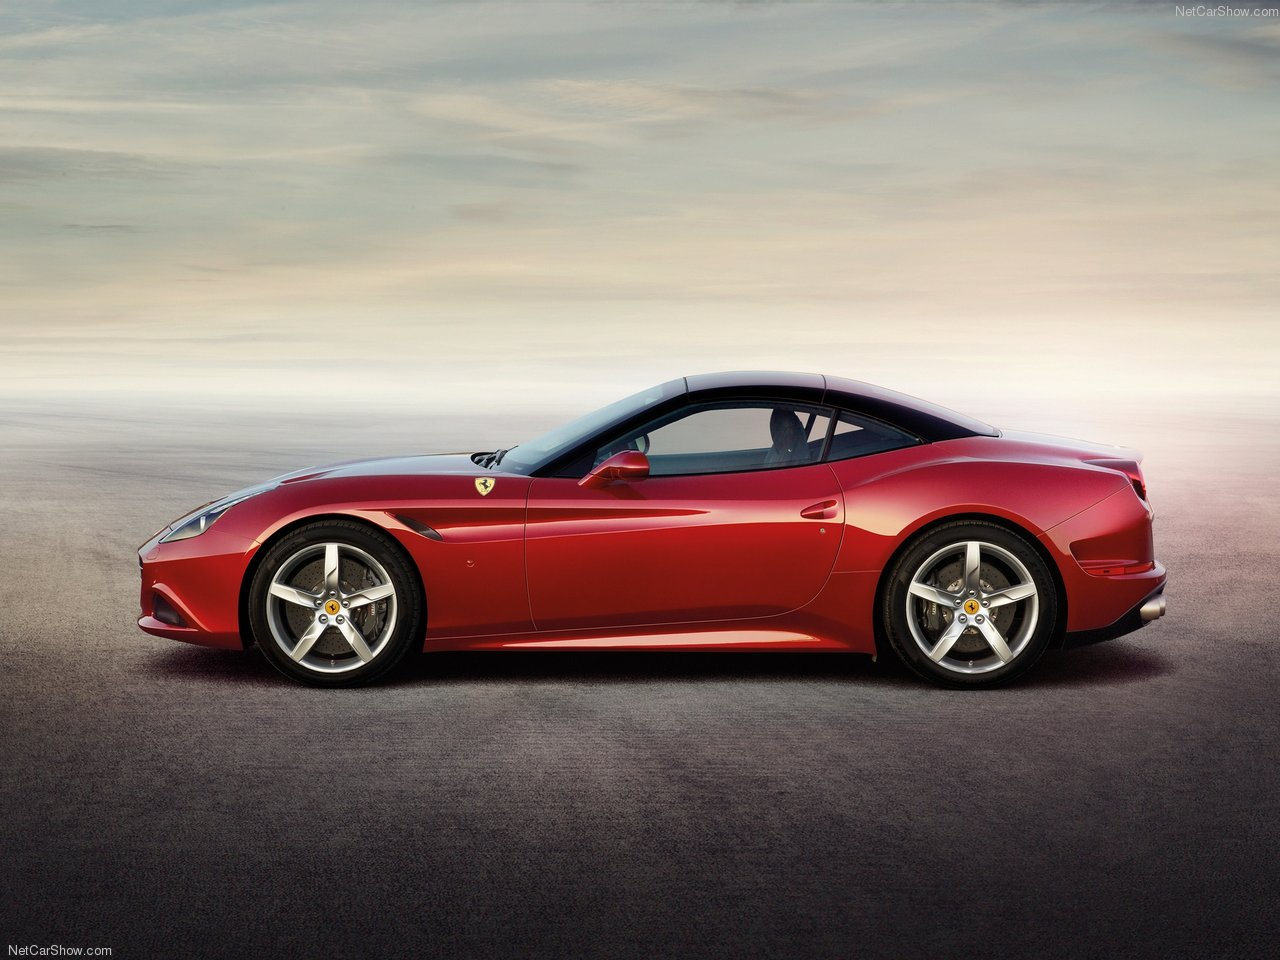 Ferrari-California_T_2015_1280x960_wallpaper_02.jpg